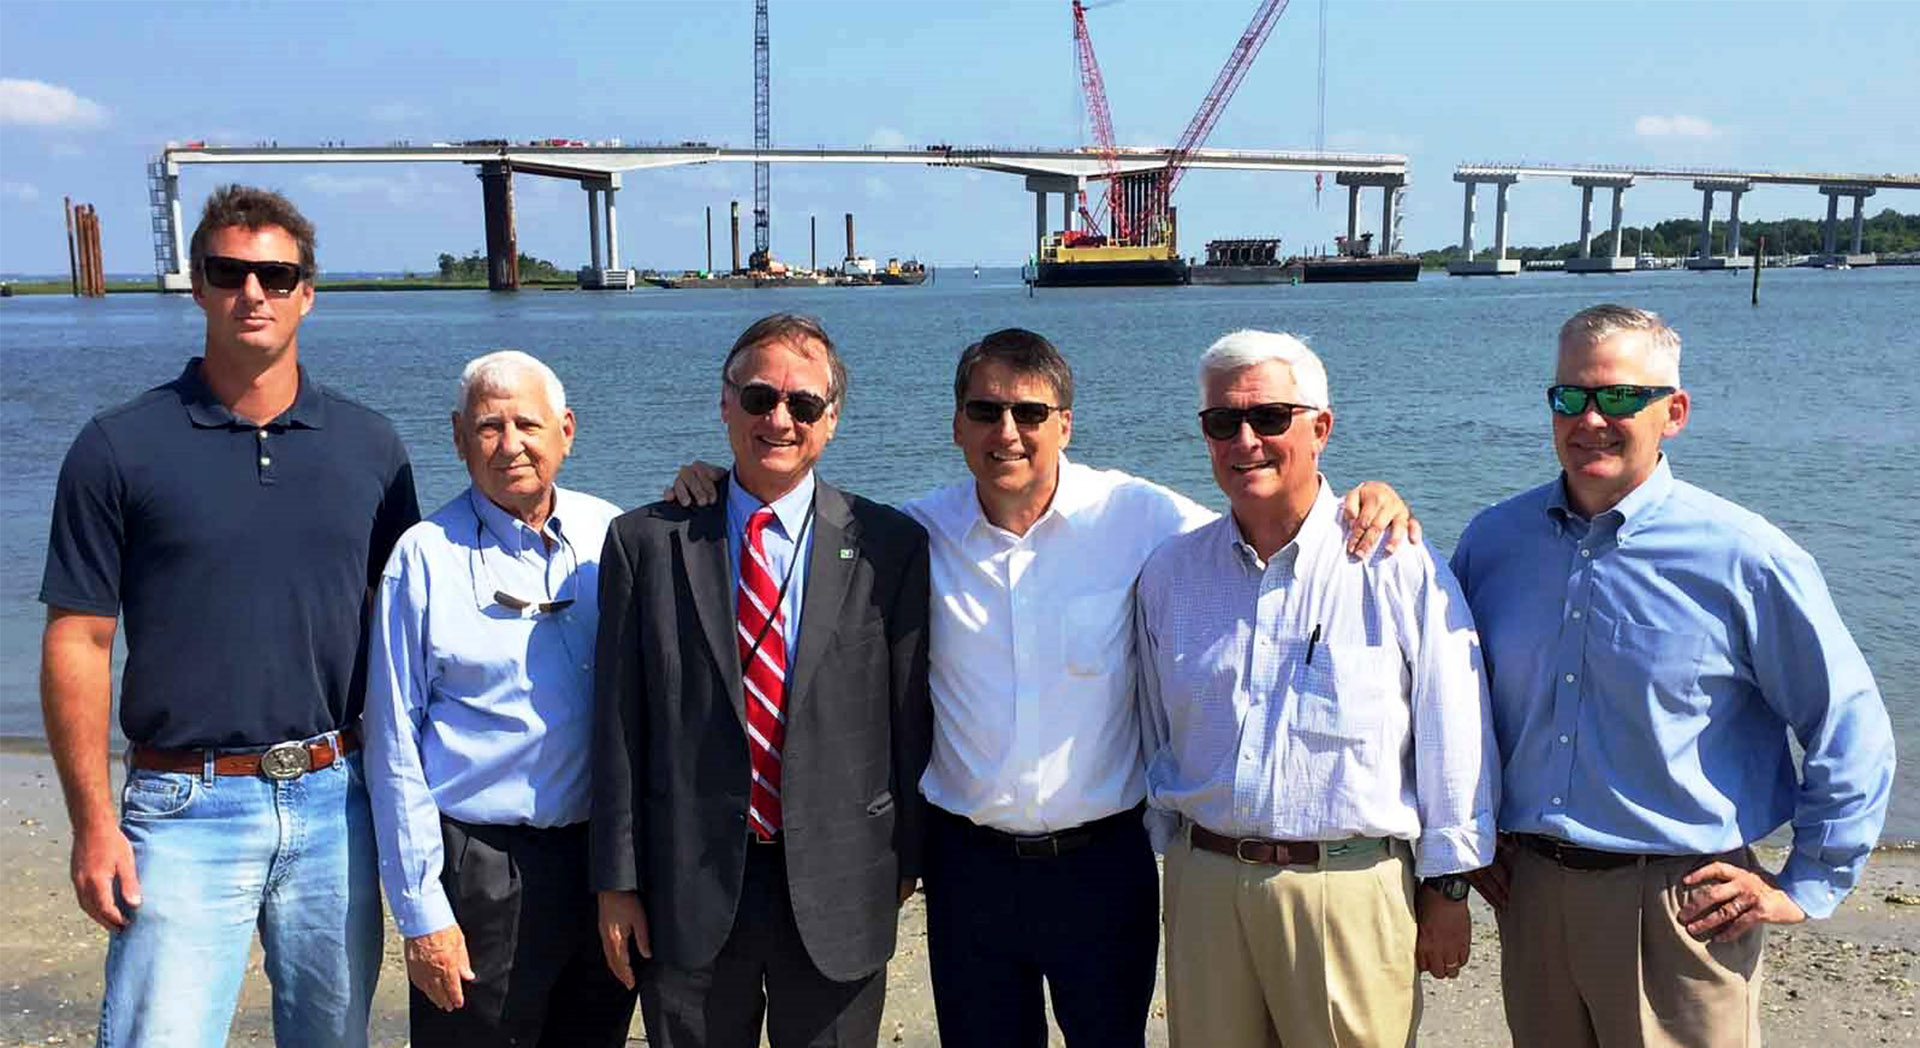 North Carolina Governor Surveys Conti's Gallants Channel Bridge